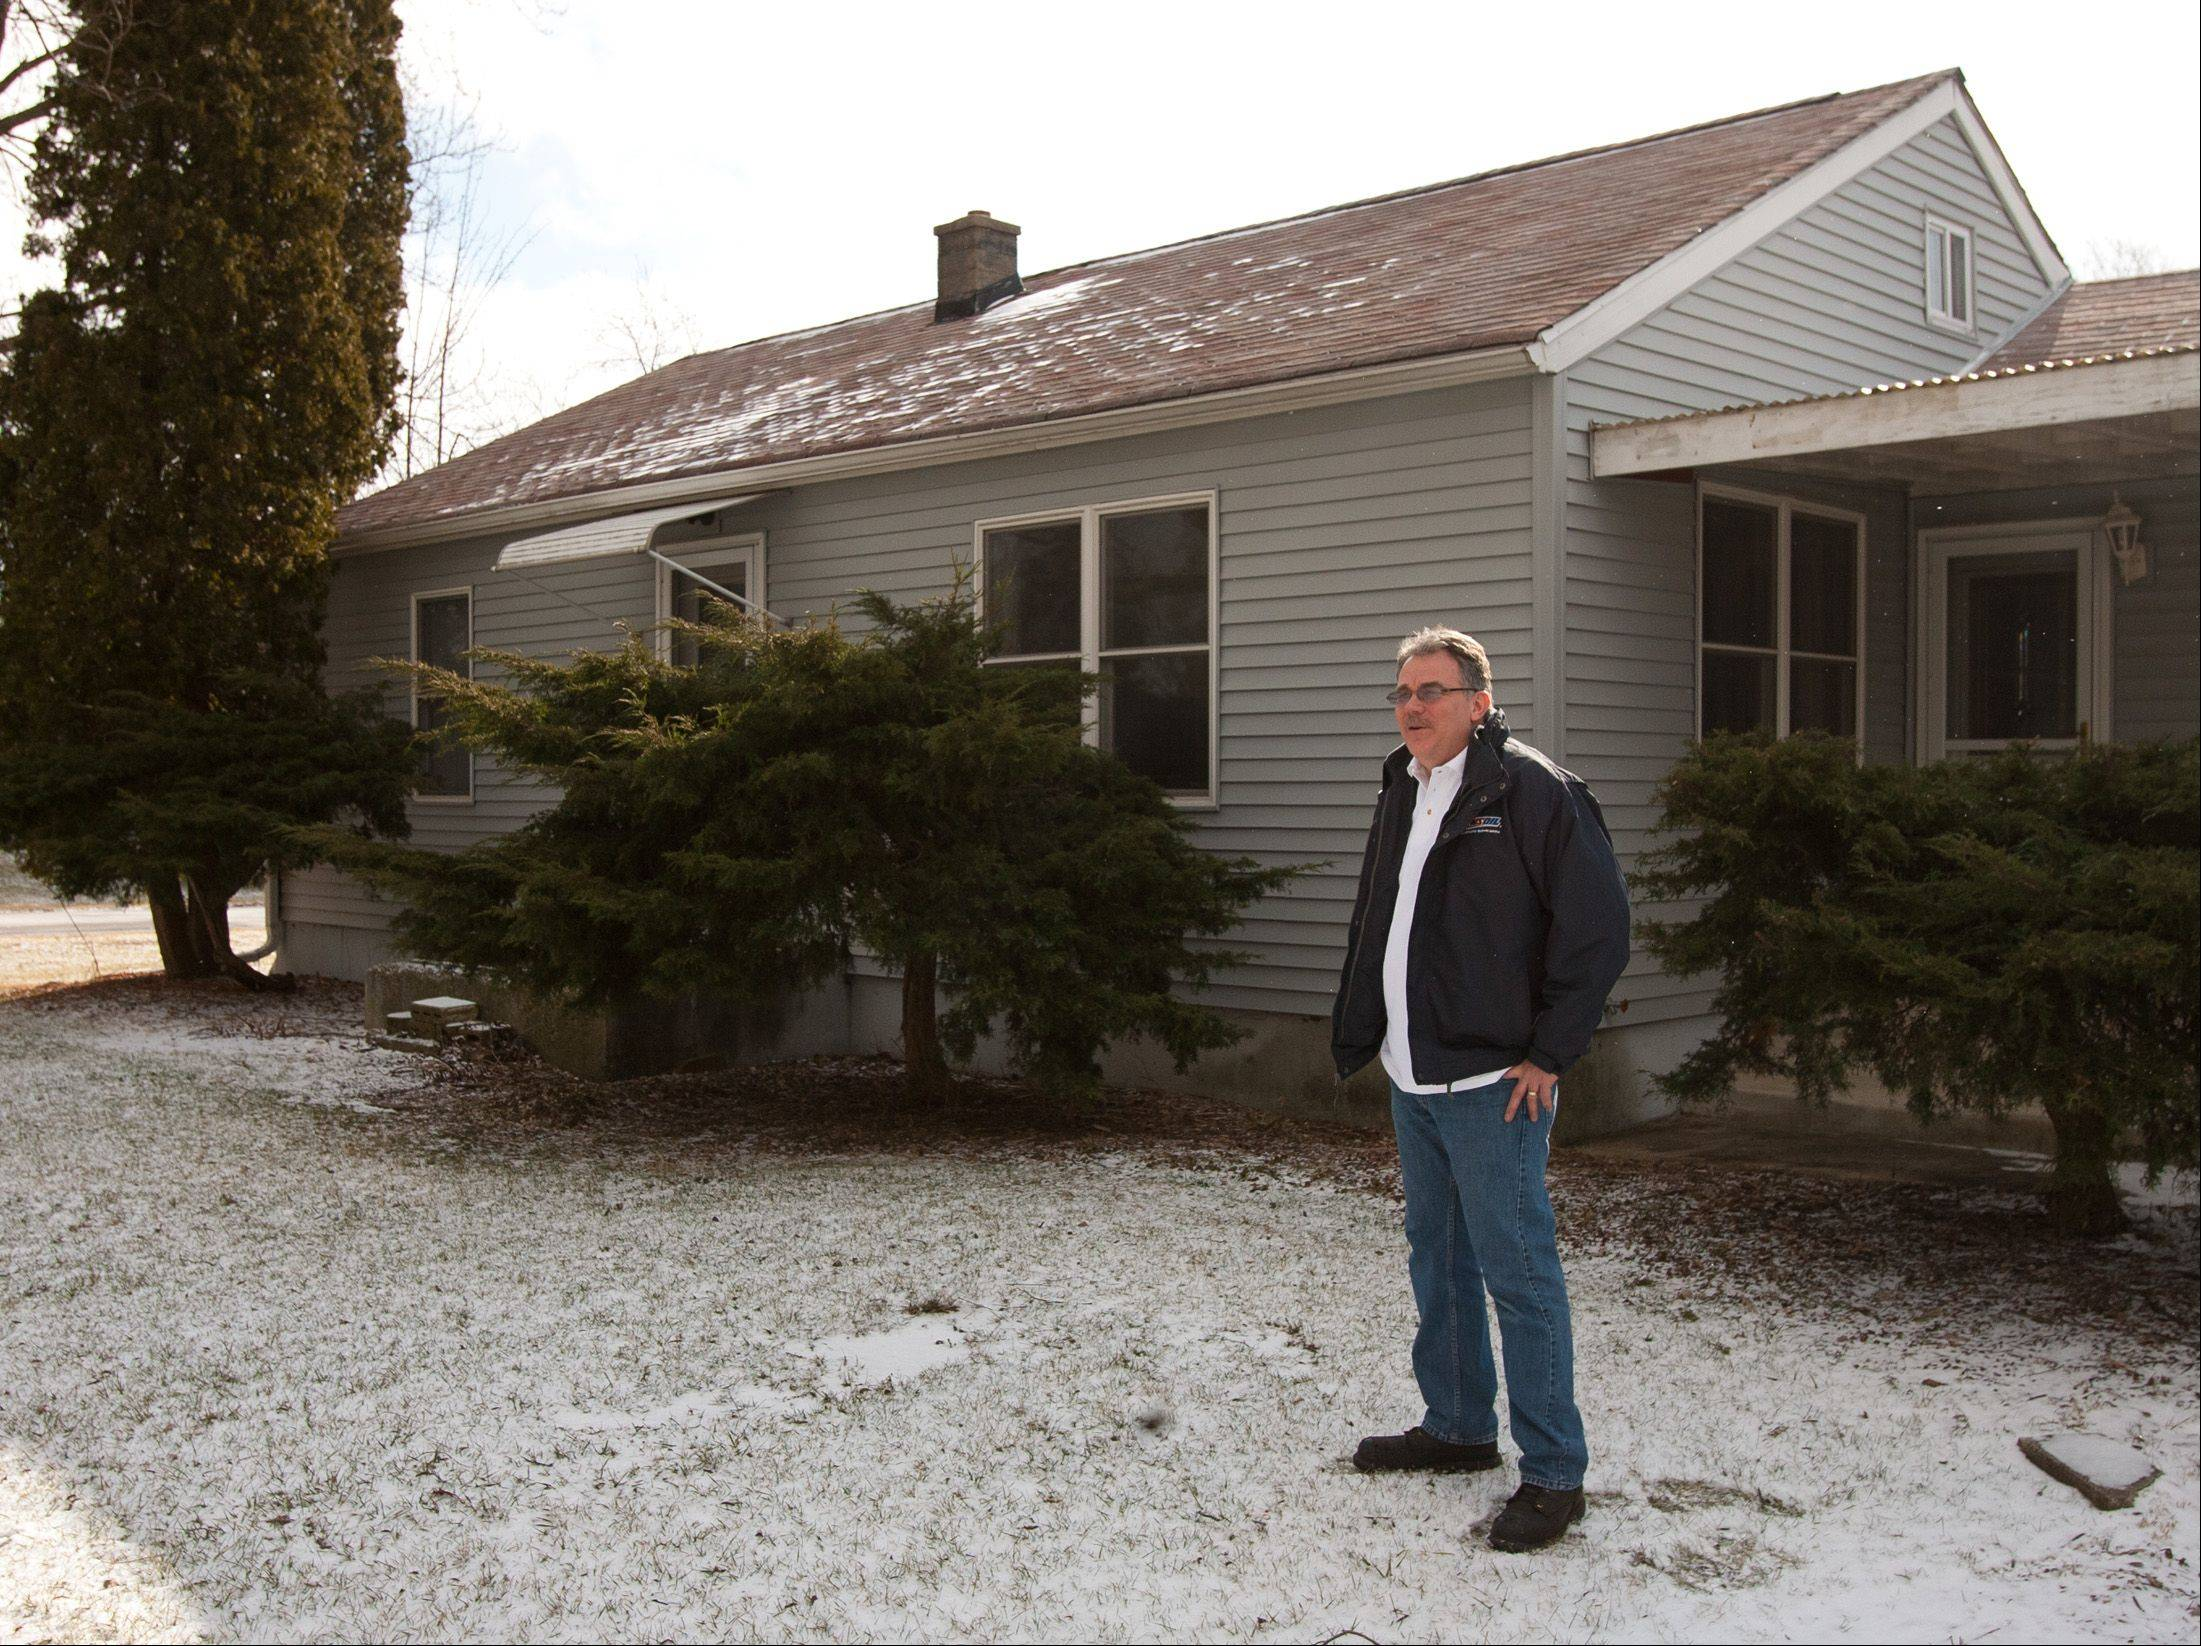 Oakbrook Terrace Historical Society Director Bob Shanahan says he's pleased the city plans to sell a Sears Homart home to the society and is open to providing funds to help maintain the house for the first few years of its operation.